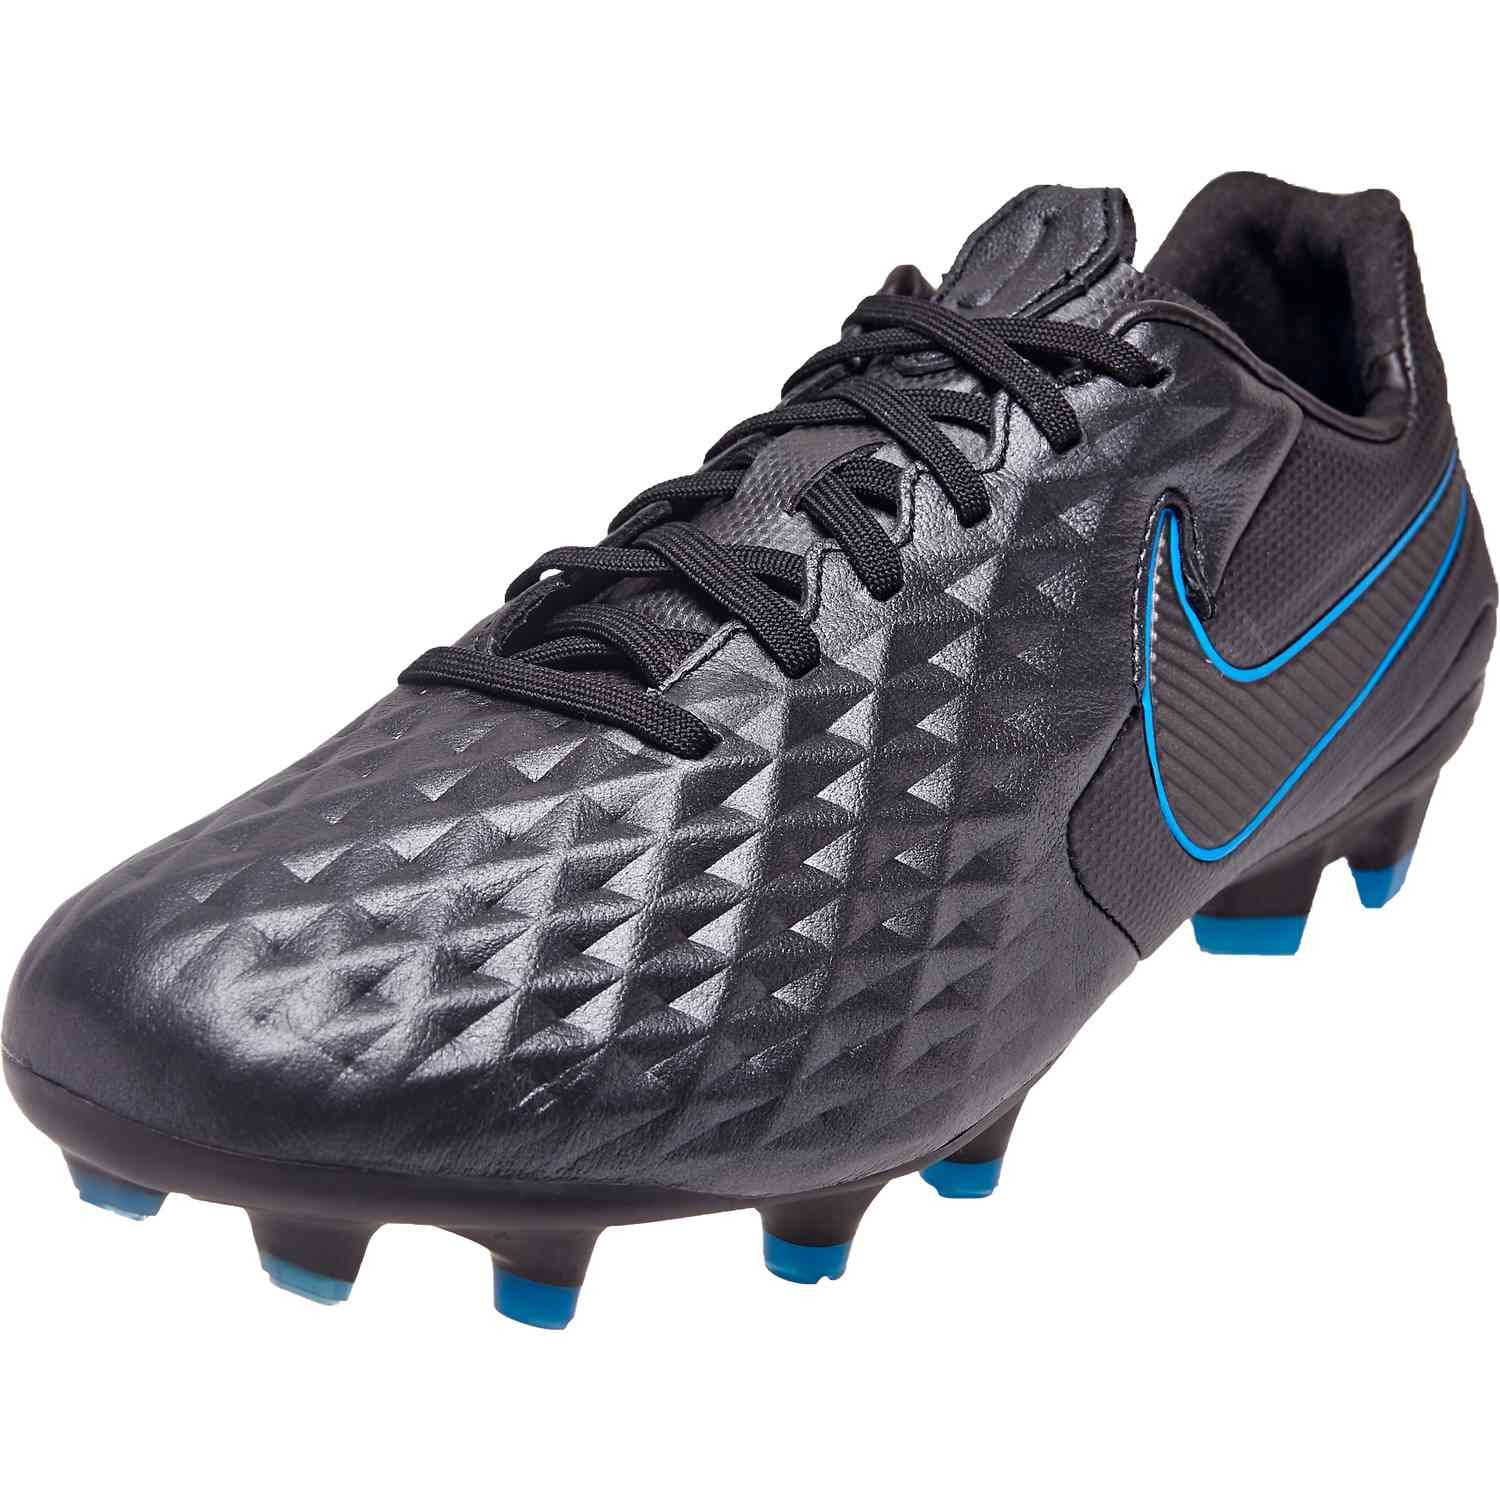 Nike Tiempo Legend 8 Pro Fg Under The Radar In 2020 Nike Soccer Shoes Nike Football Boots Soccer Boots